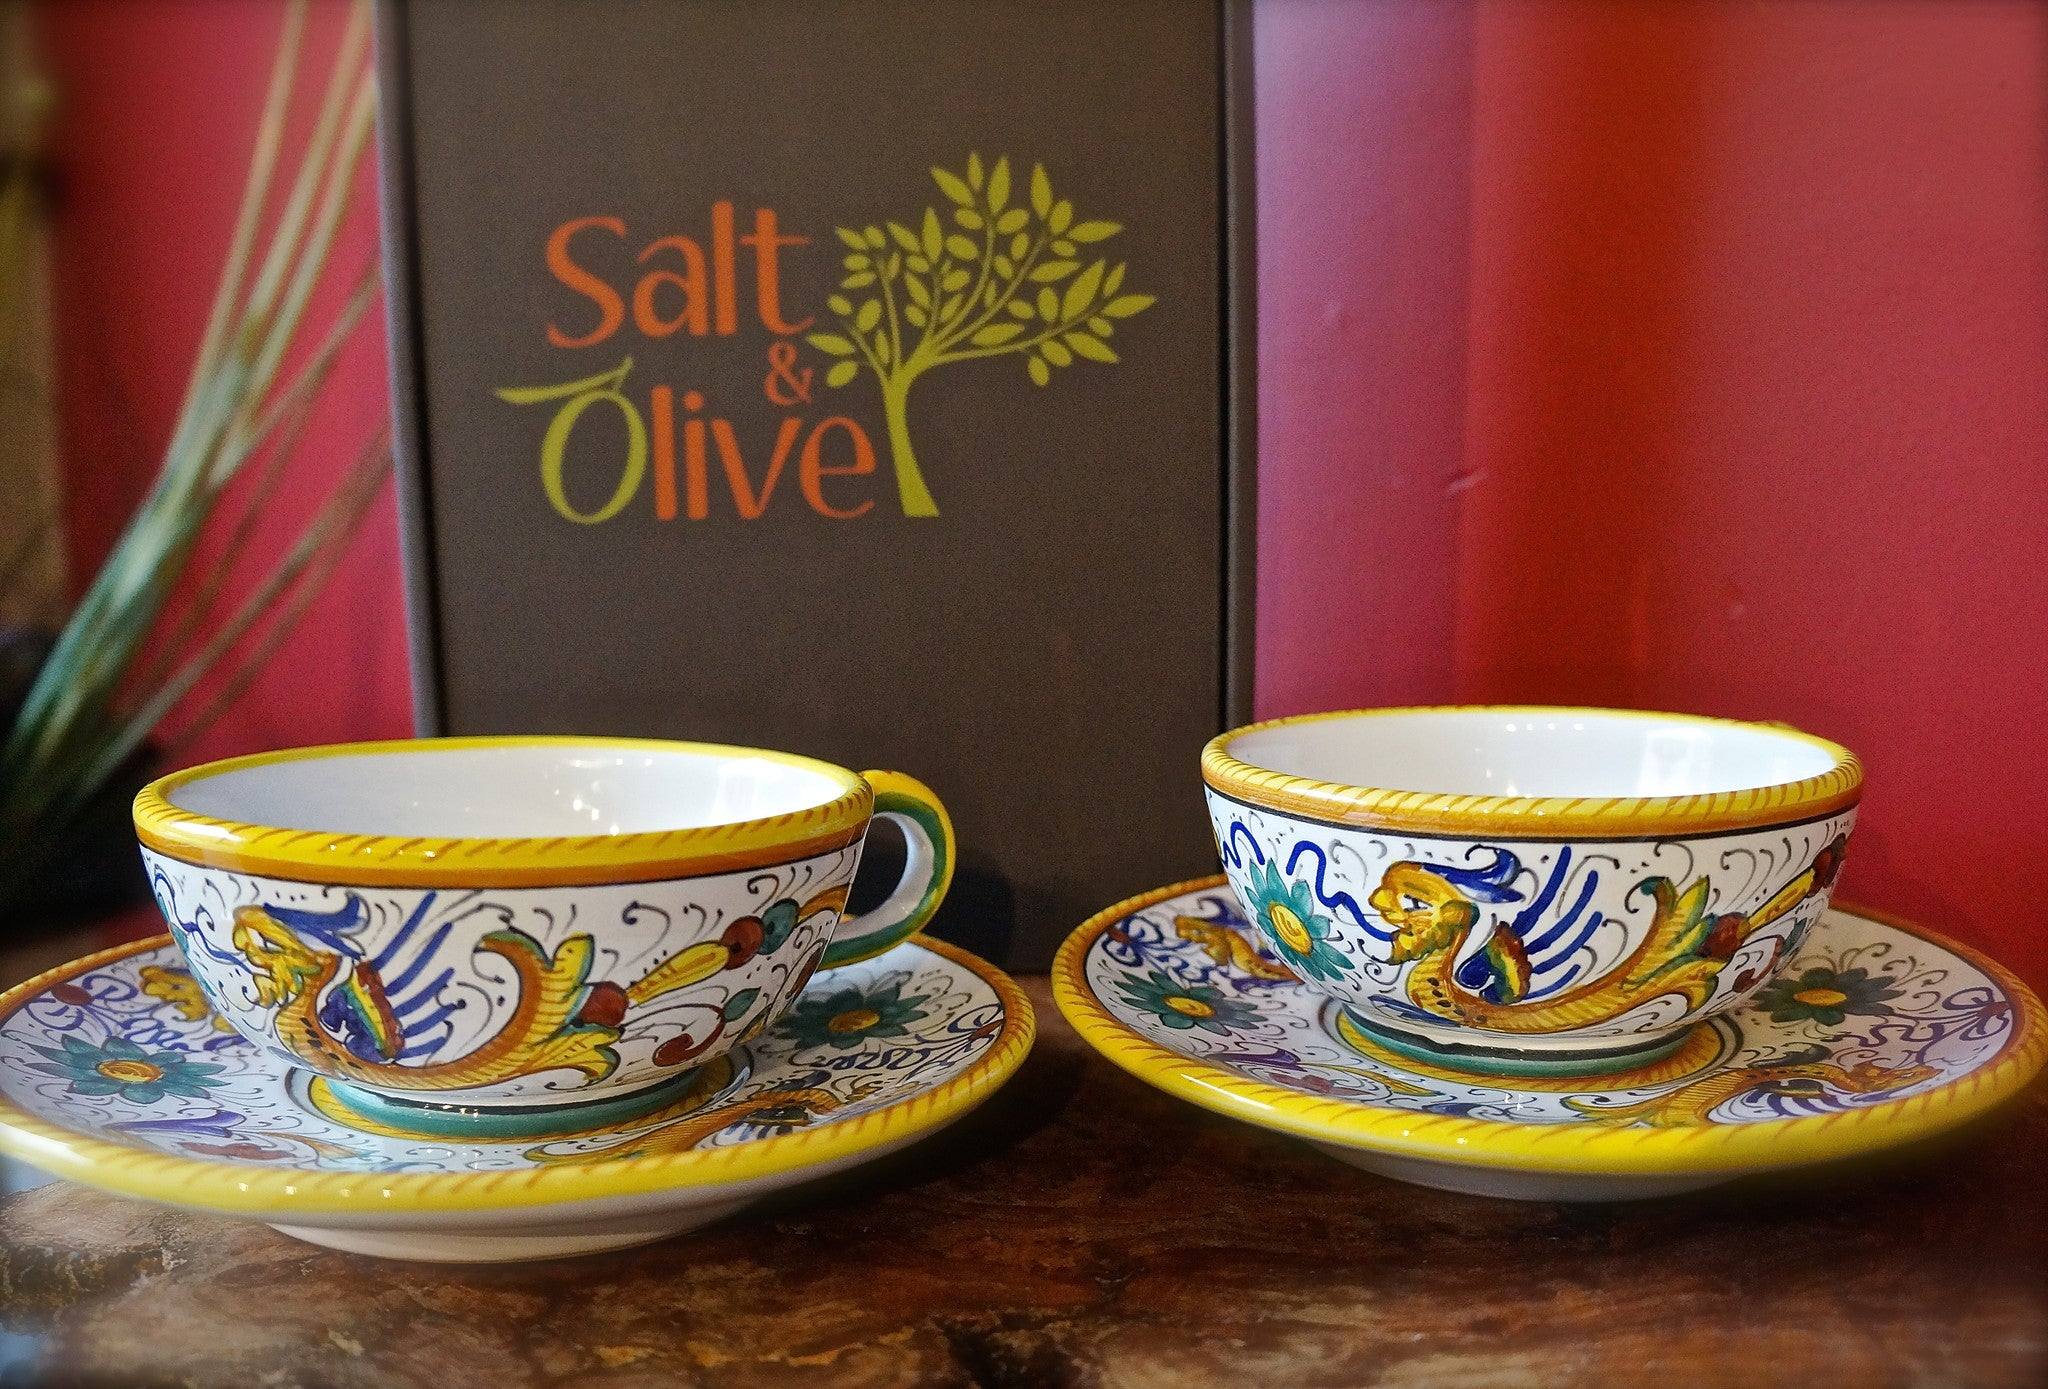 Deruta Raffaellesco Tea Cup and Saucer Set with Moroccan Mint and Mexican Chocolate Teas